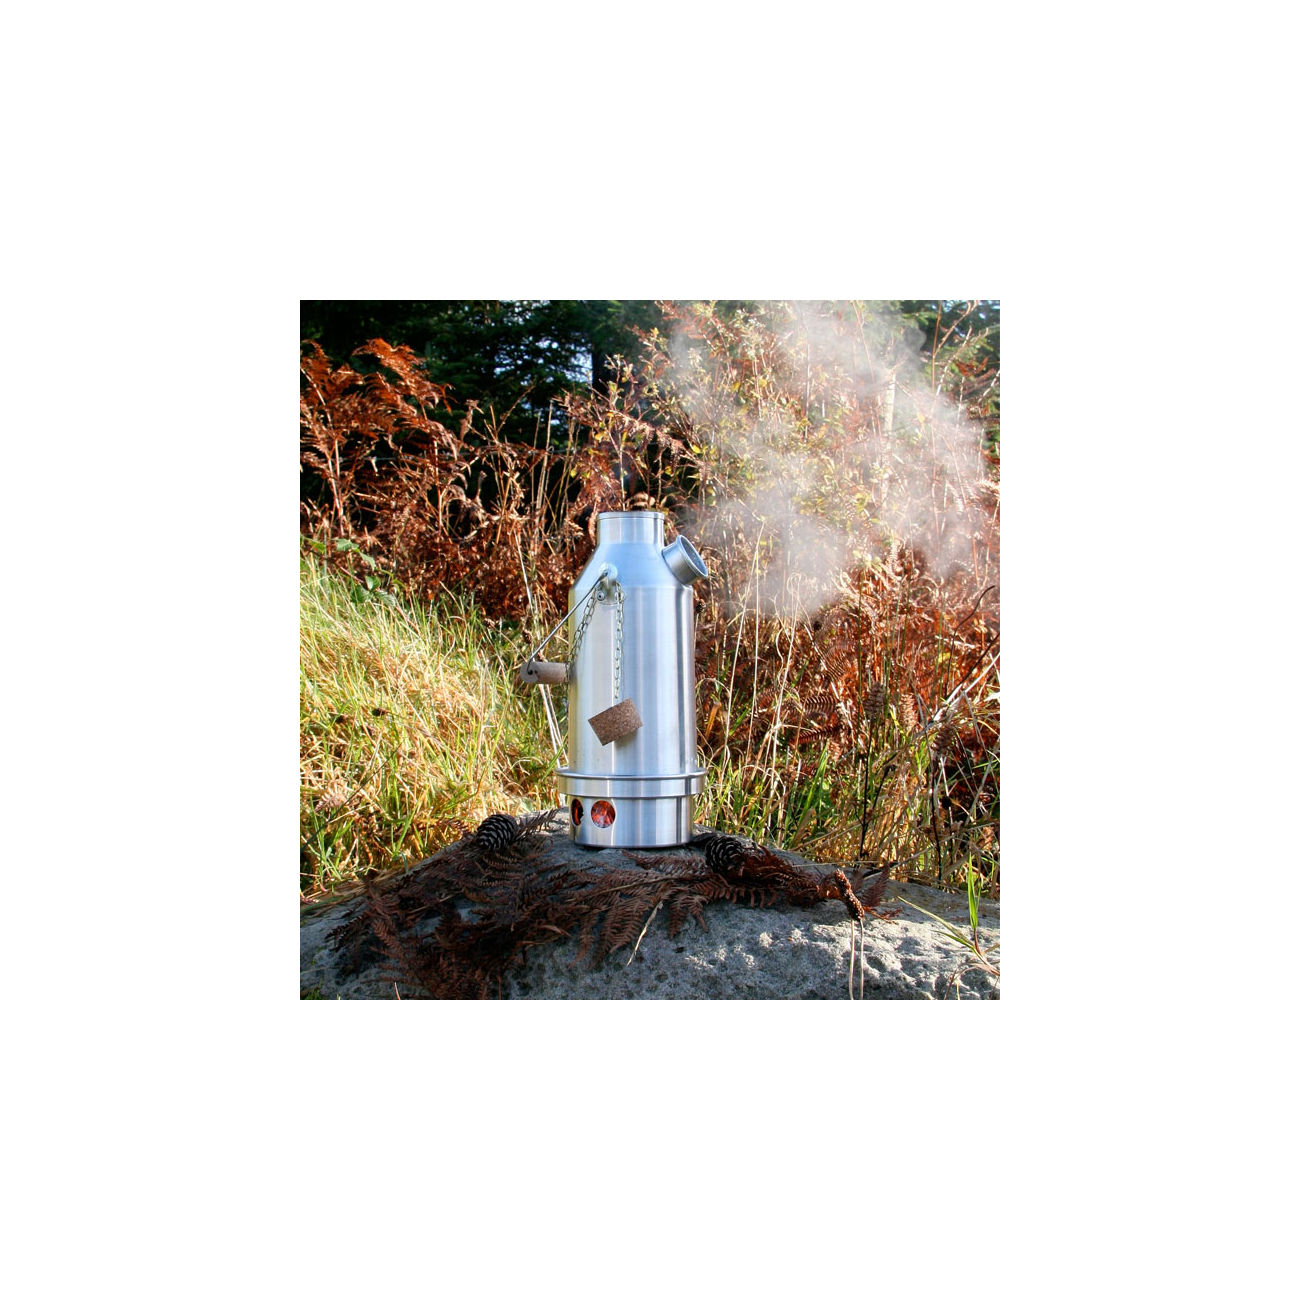 Kelly Kettle Sturmkanne Base Camp SST groß 1,5 L 4